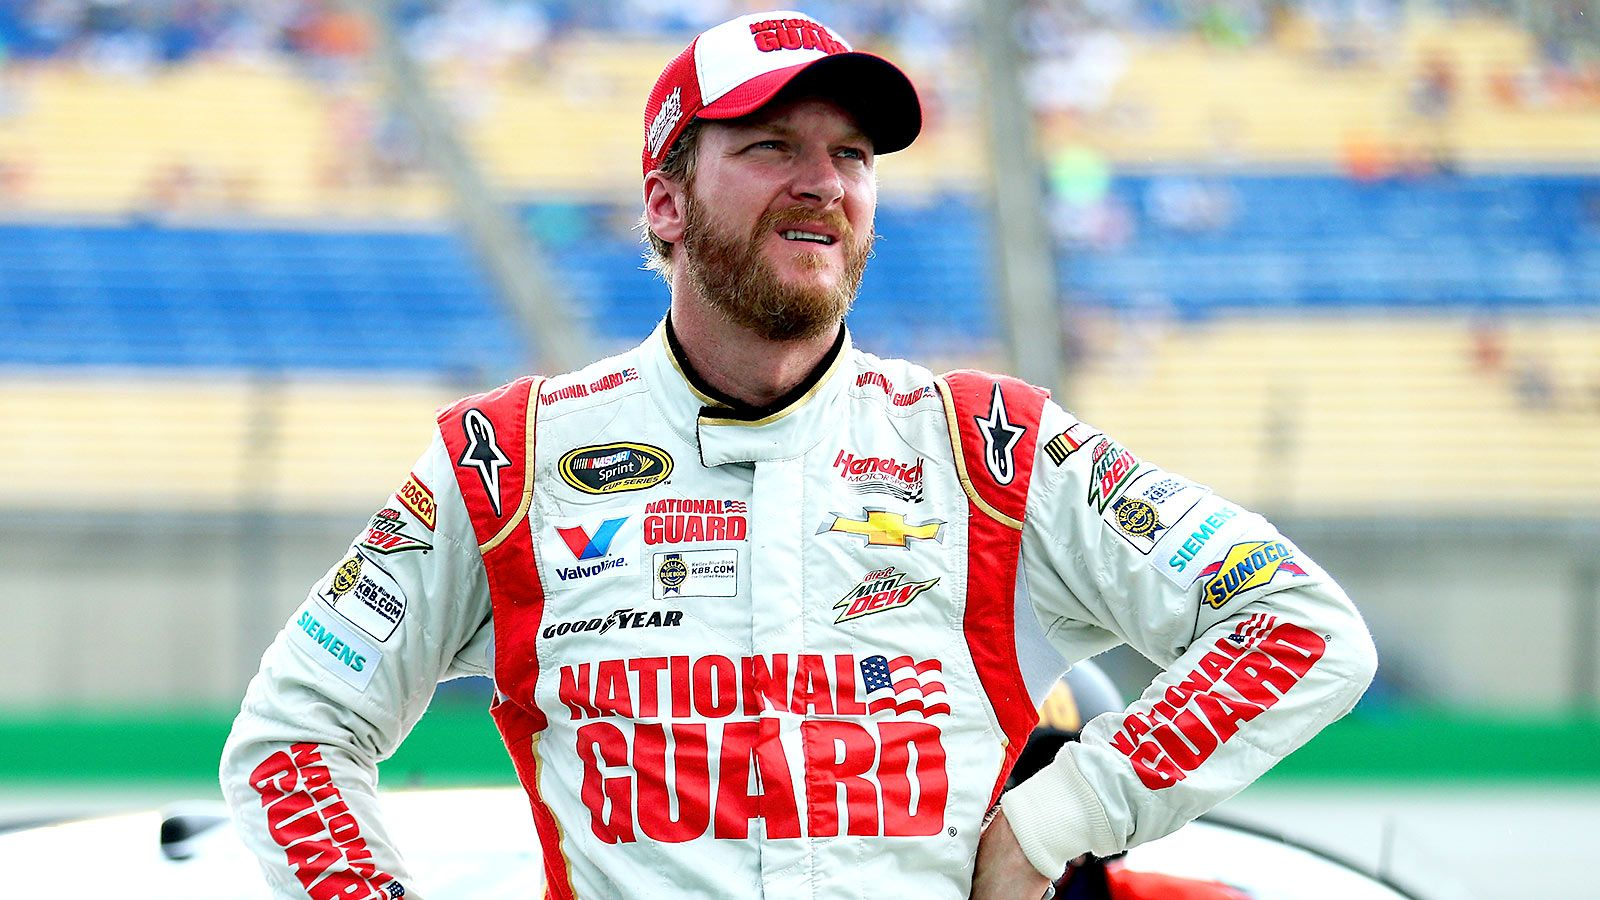 National Guard wants to end Earnhardt sponsorship